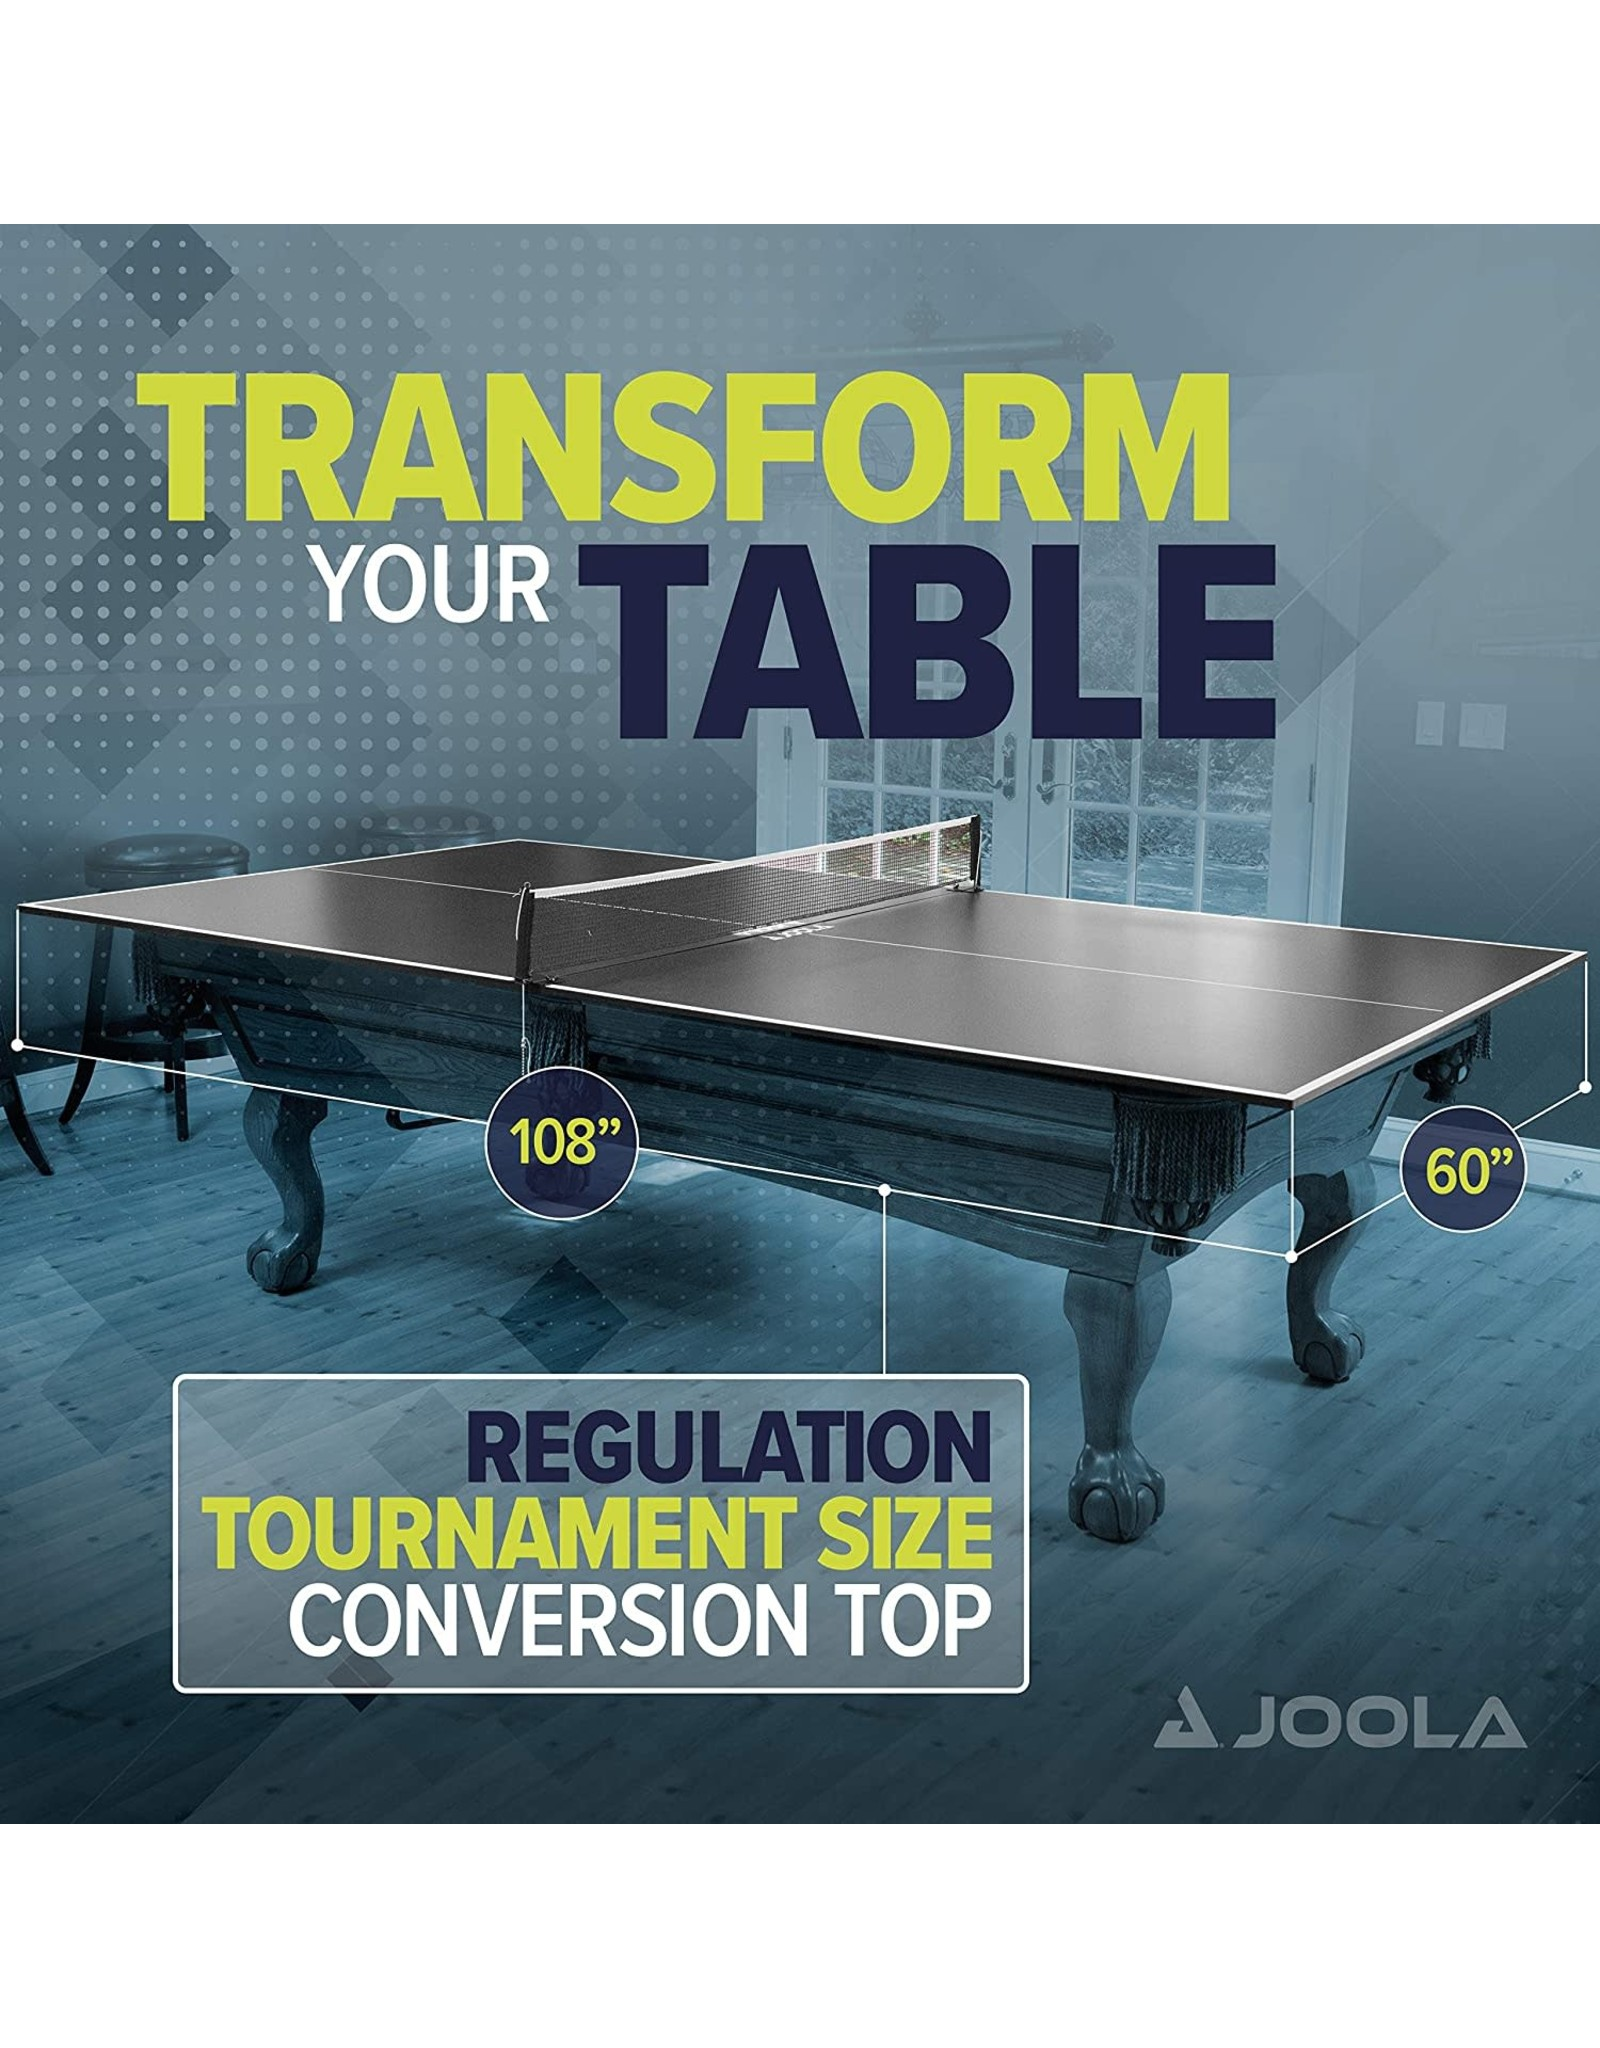 JOOLA JOOLA Regulation Table Tennis Conversion Top with Foam Backing and Net Set - Full Sized MDF Ping Pong Table Top for Pool Table - Quick and Easy Assembly - Foam Backing to Protect Billiard Table, Full Foam Backing